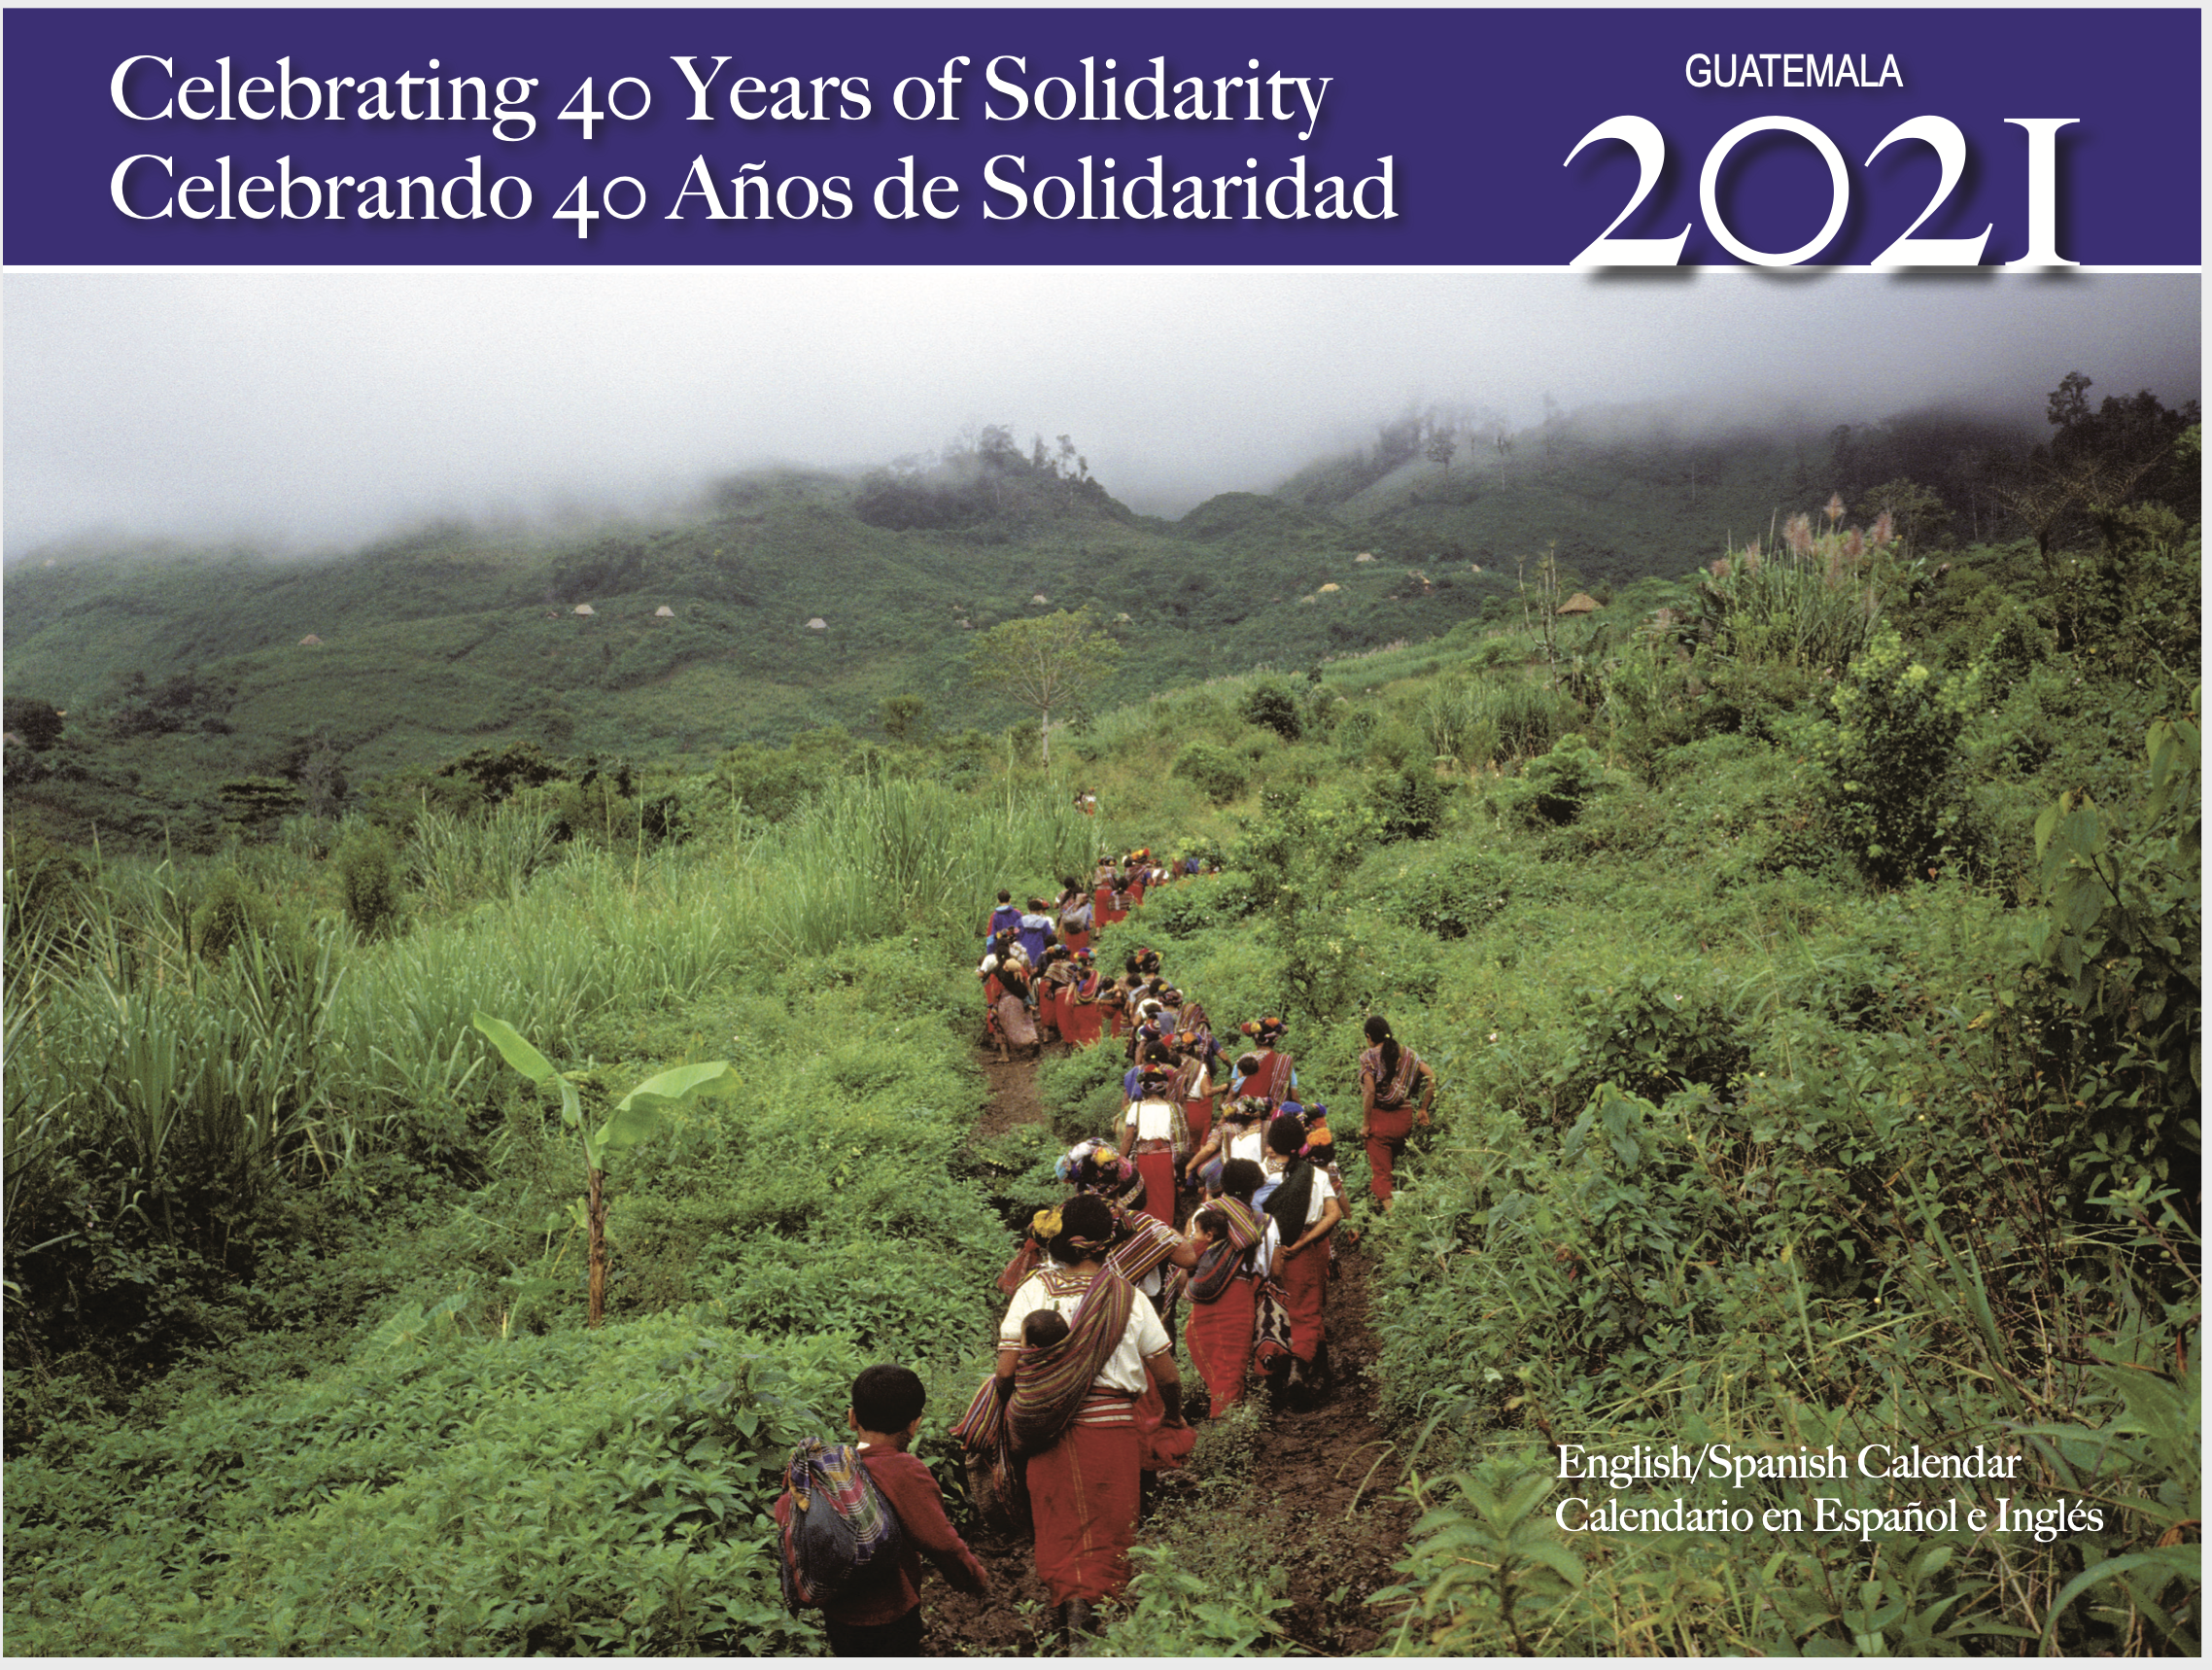 2021 Calendar cover. Image of CPR community members walking on a small path through green mountains. Reads: Celebrating 40 years of Solidarity, Guatemala 2021